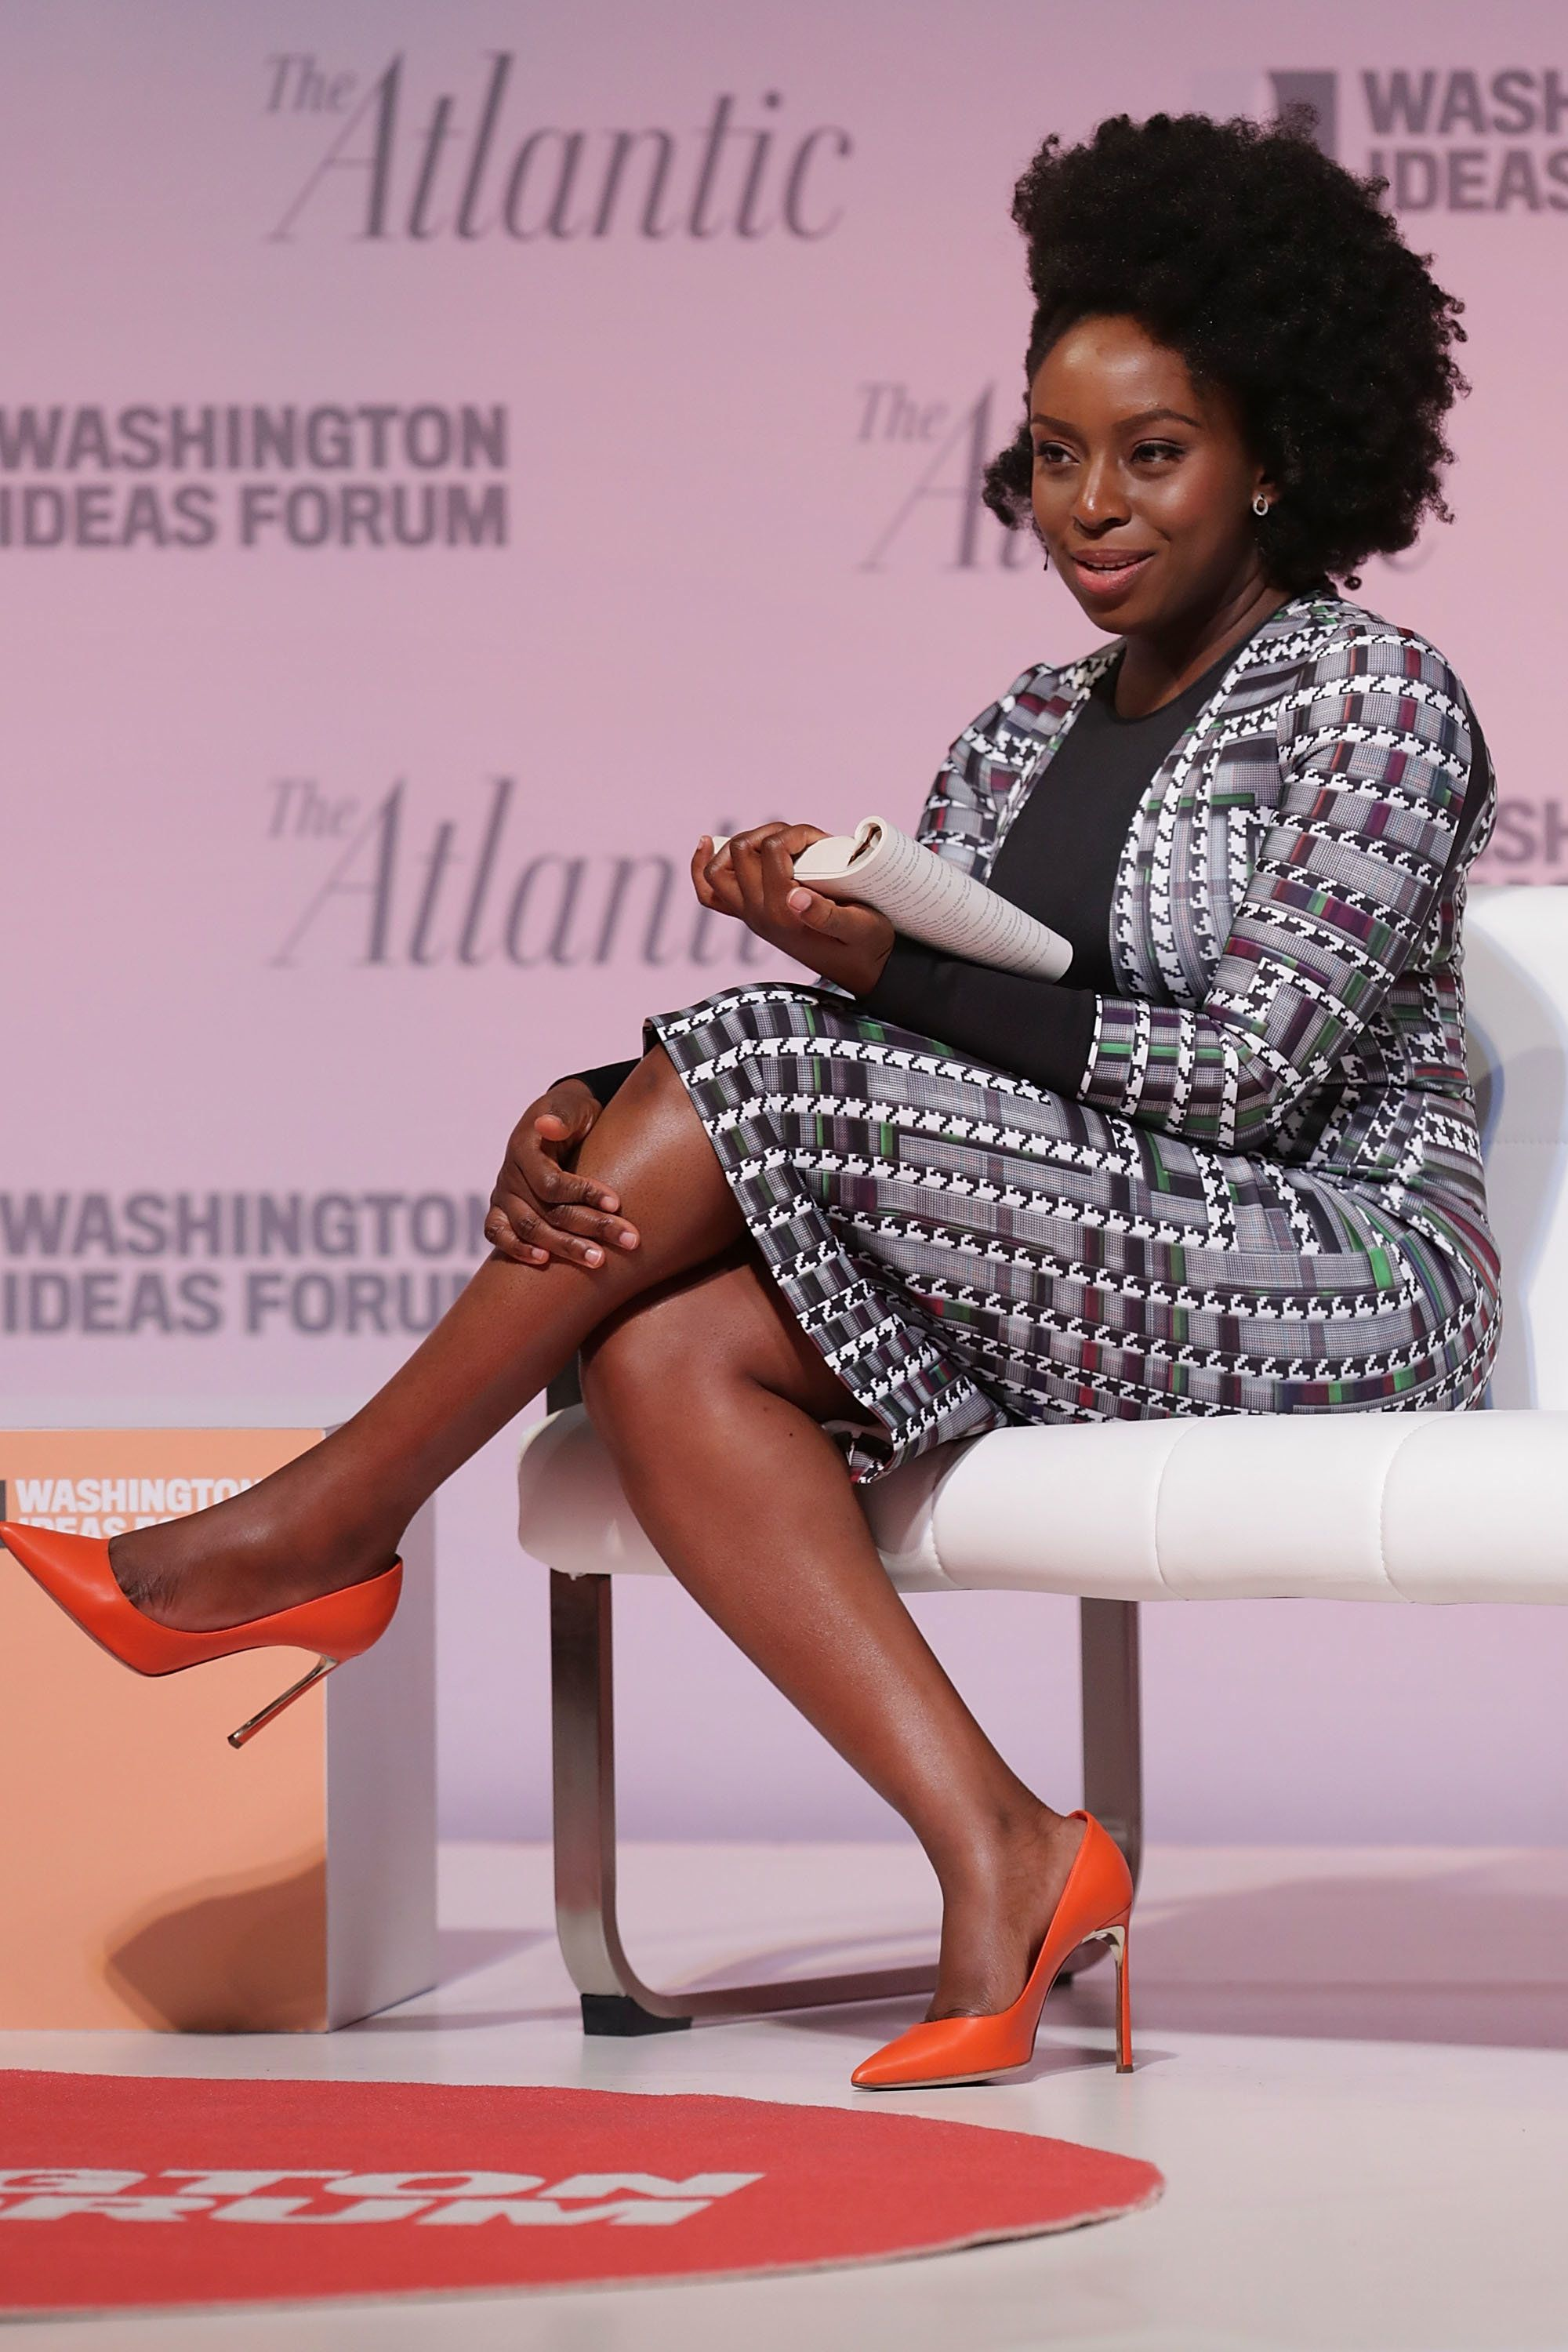 Chimamanda Ngozi Adichie reads from one of her novels during the Washington Ideas Forum in Washington, D.C., in September.